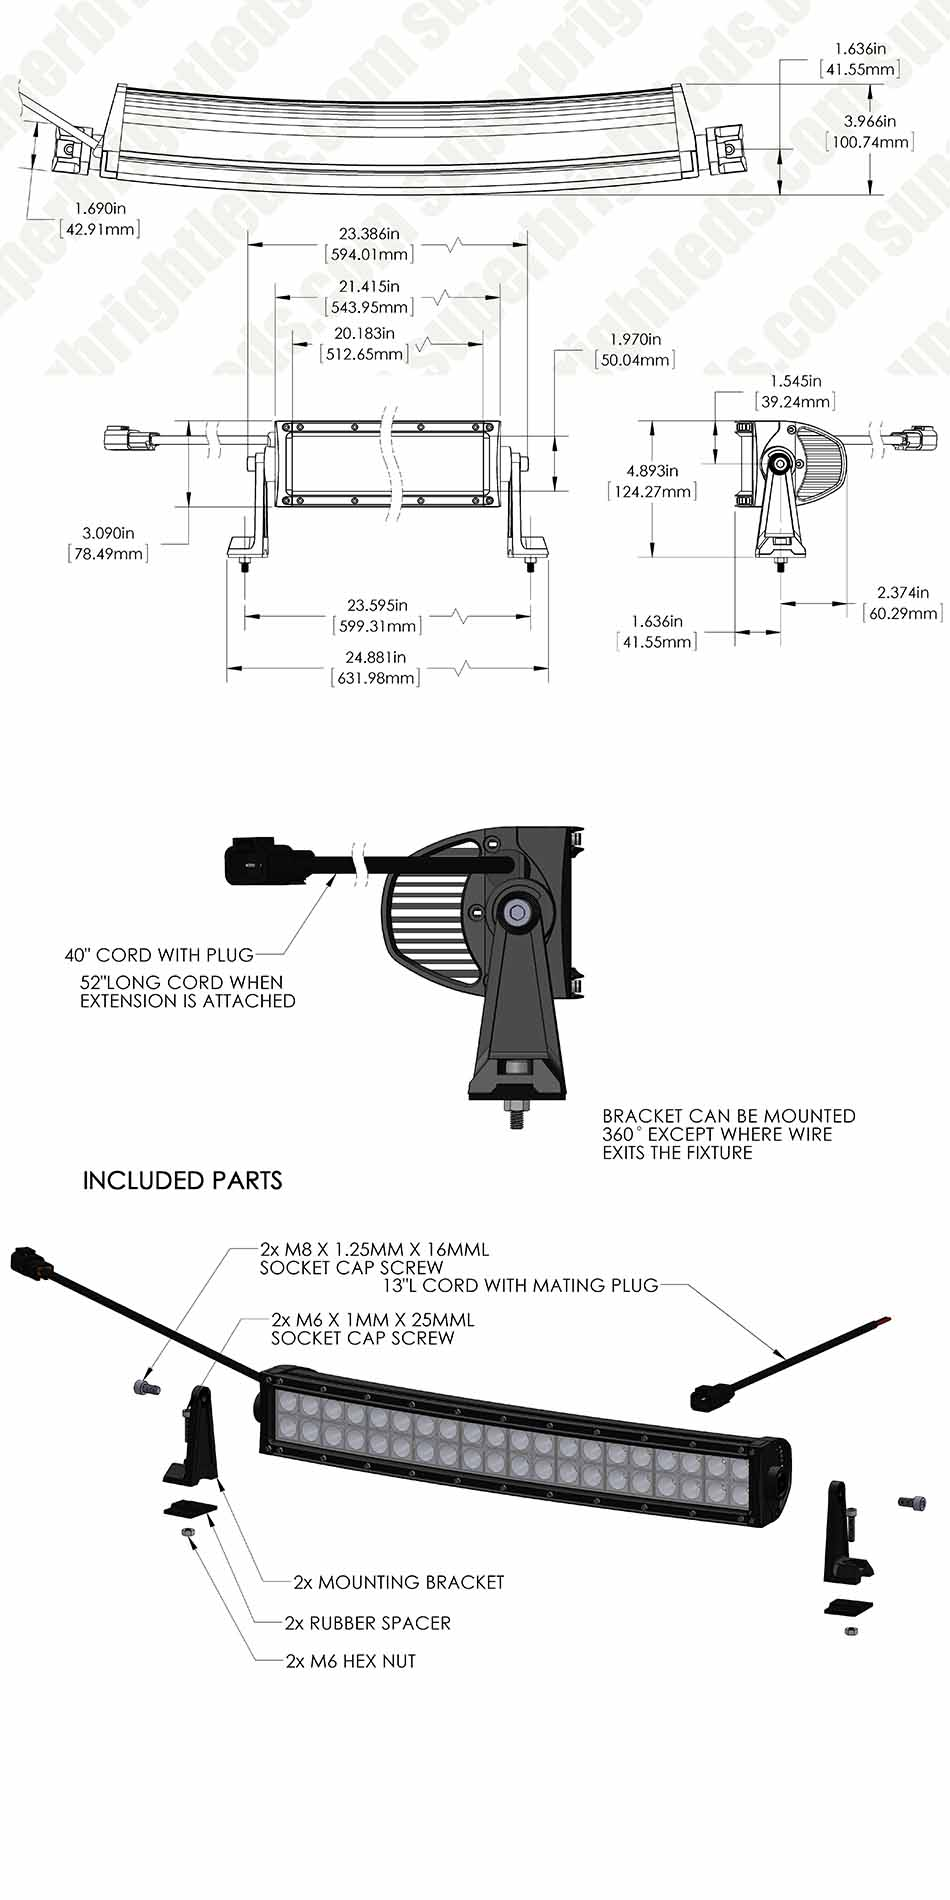 Curving Led Wiring Diagram For Use Library 20 Inch Light Bar Curved Off Road 99w 9600 Lumens